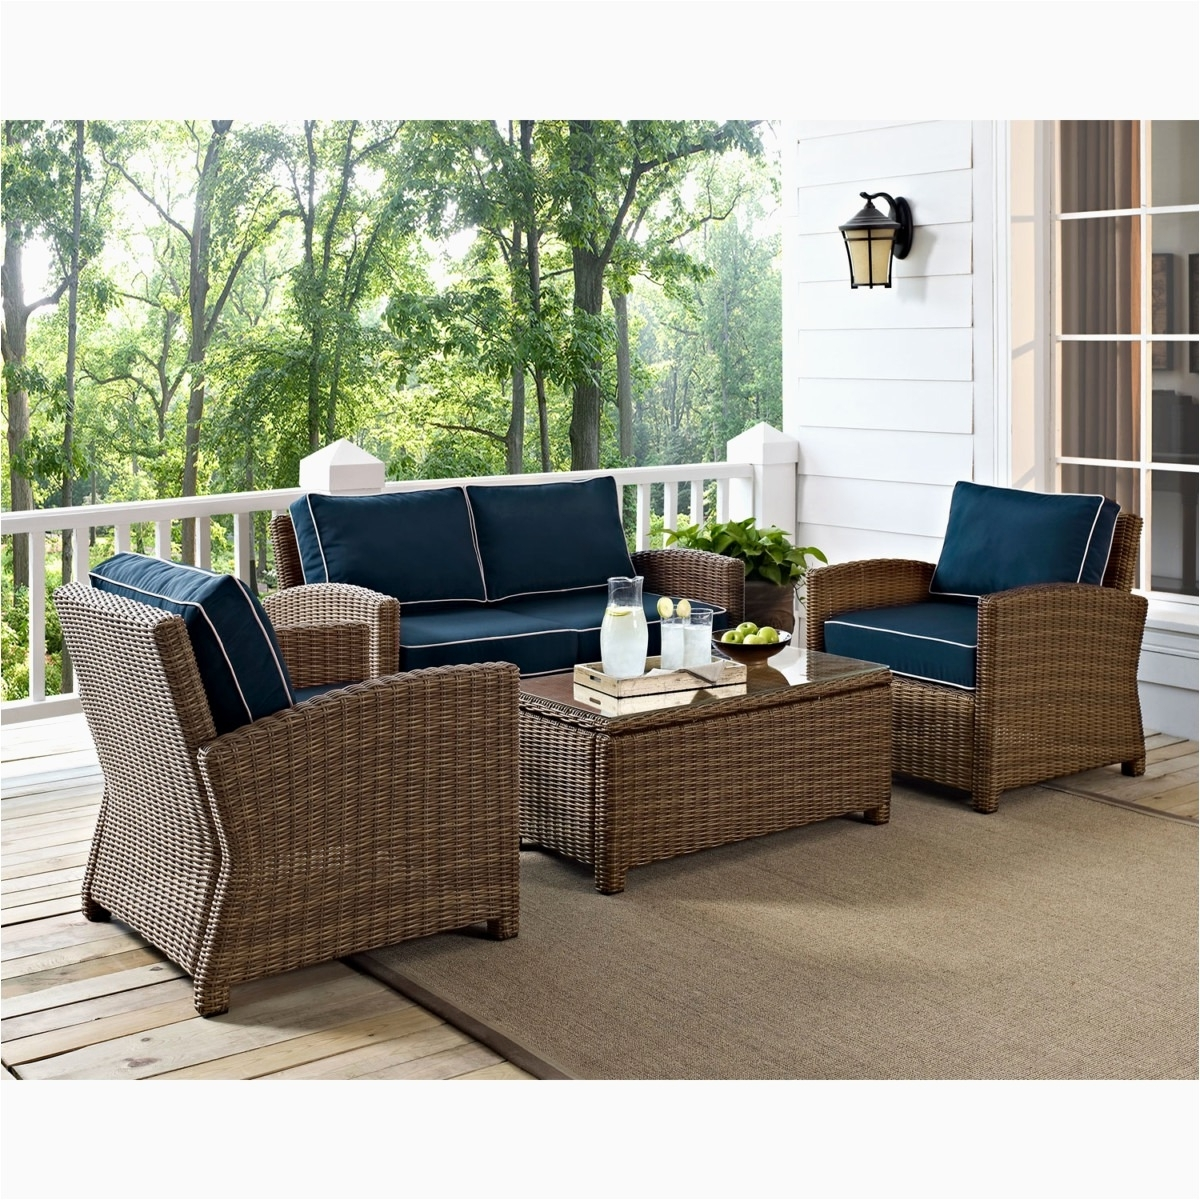 Luxury Sam's Club Outdoor Furniture Elegant – Best Outdoor Design Within Most Recent Patio Conversation Sets At Sam's Club (View 7 of 15)